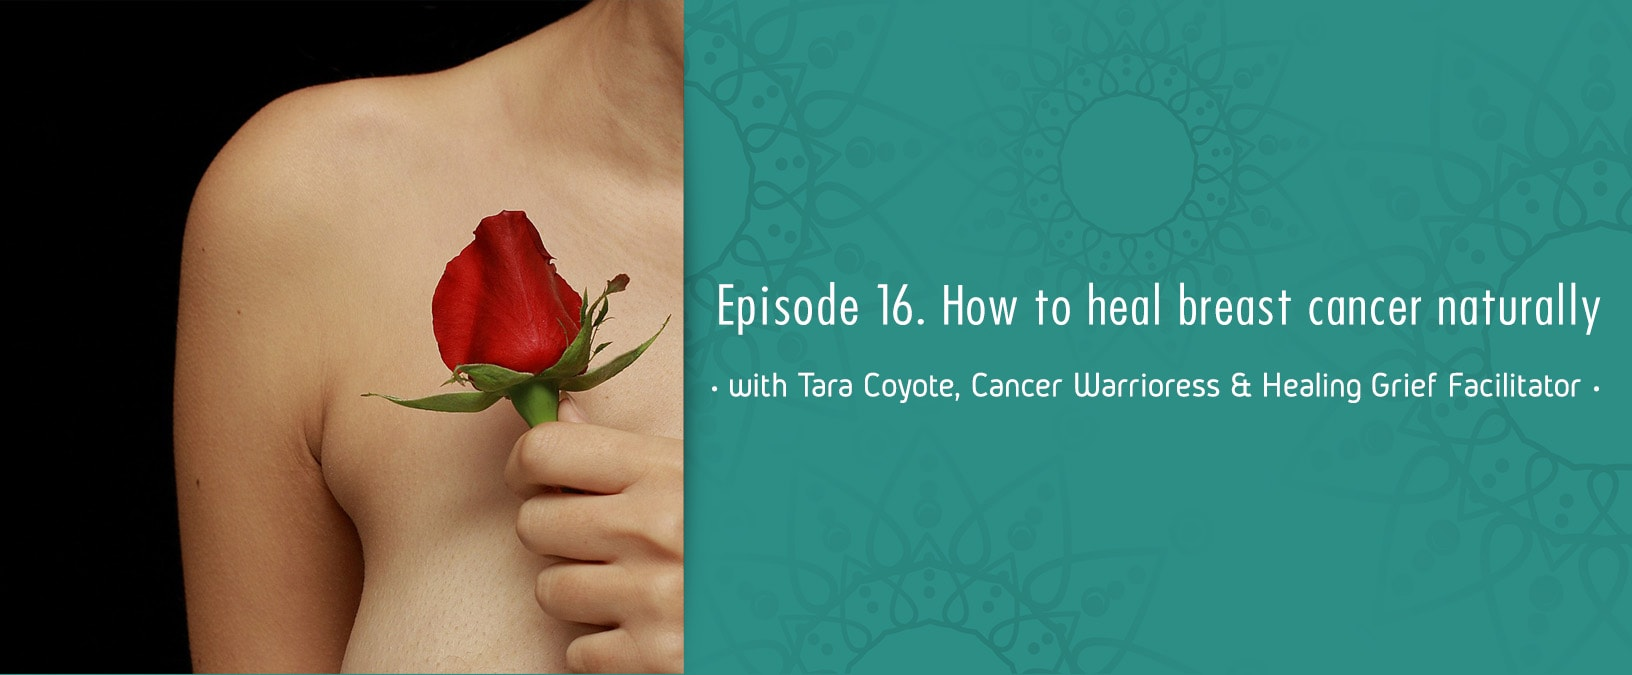 How to Heal Breast Cancer Naturally